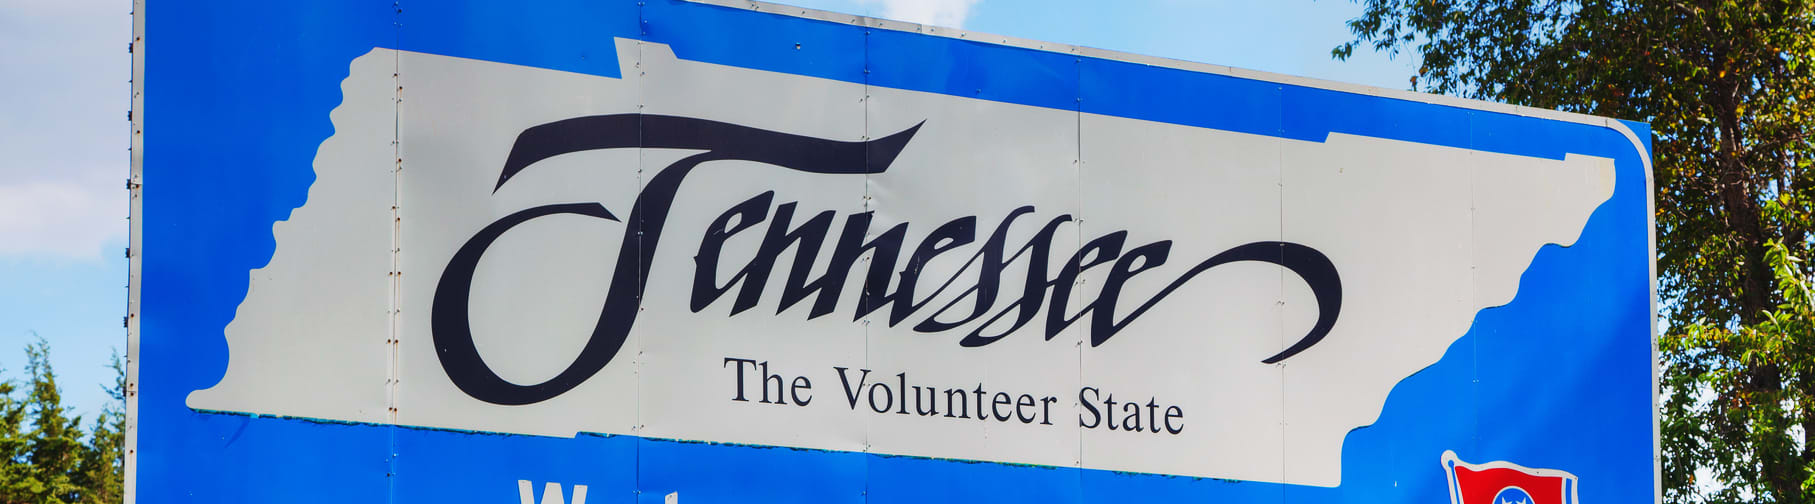 Tennessee state sign